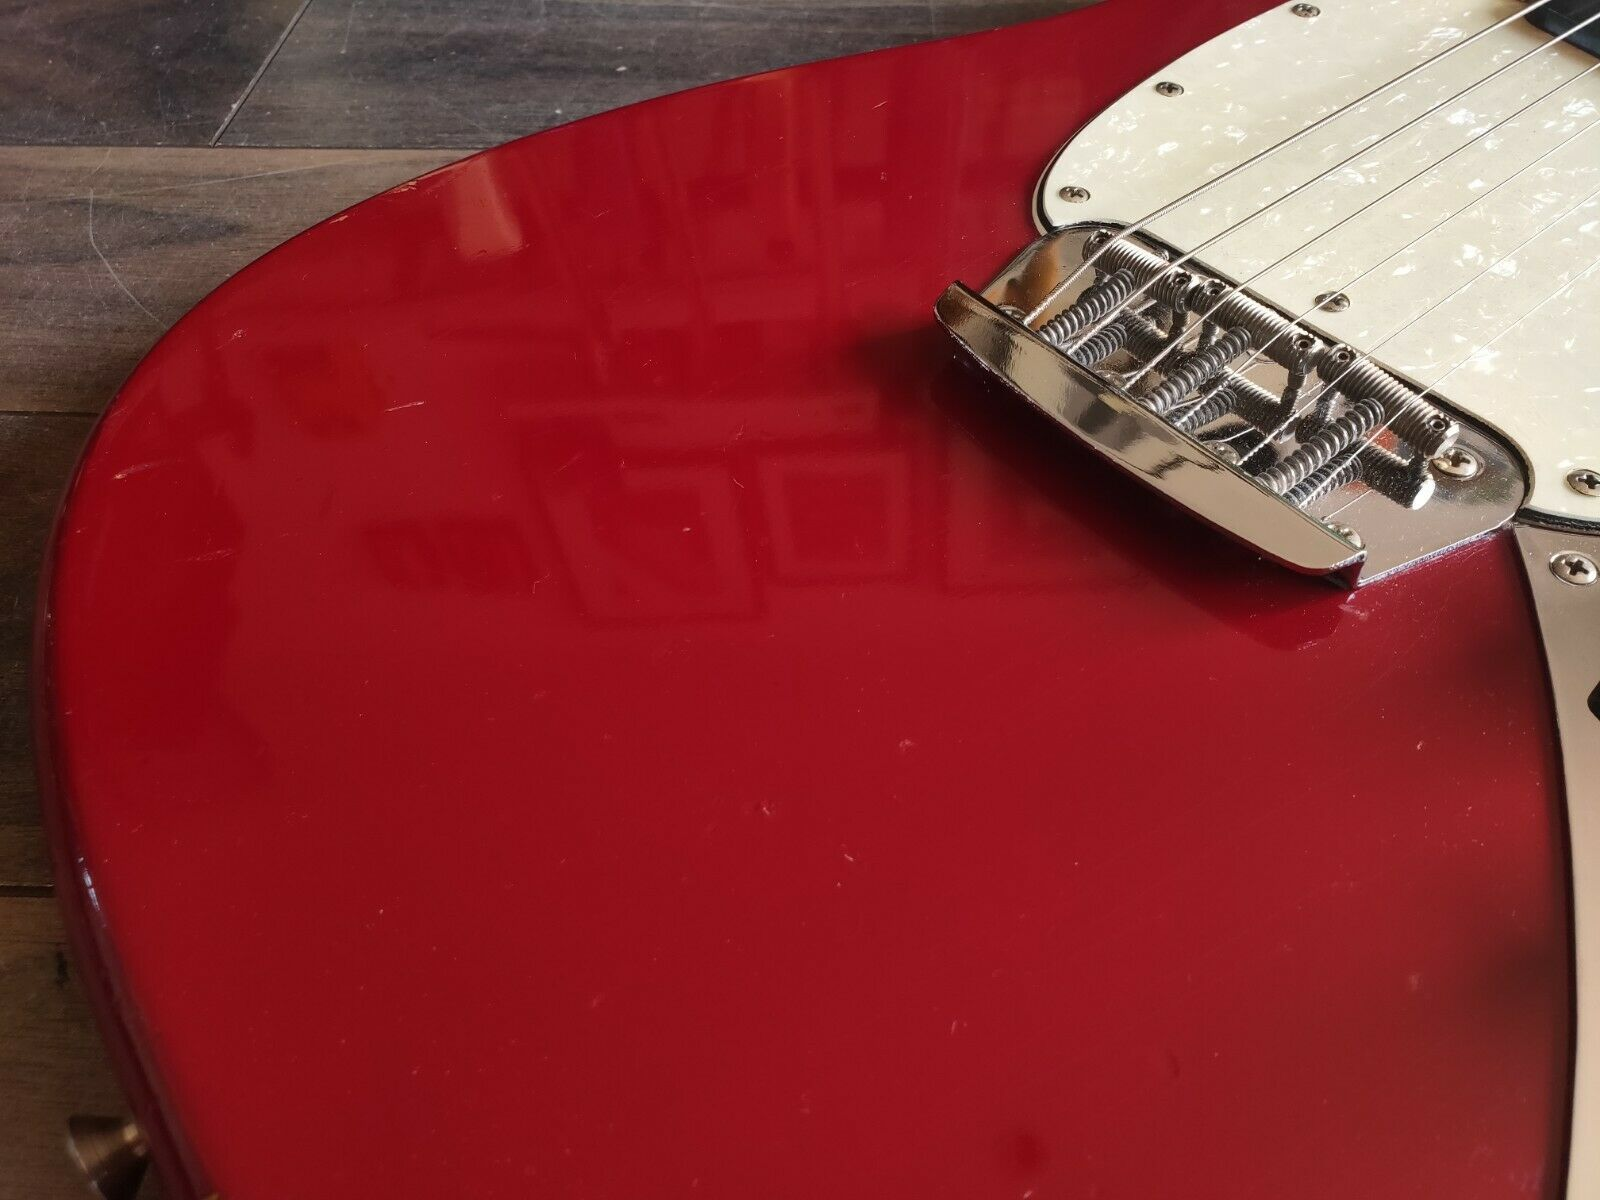 1966 Fender USA Musicmaster II Vintage Offset Electric Guitar (Dakota Red)